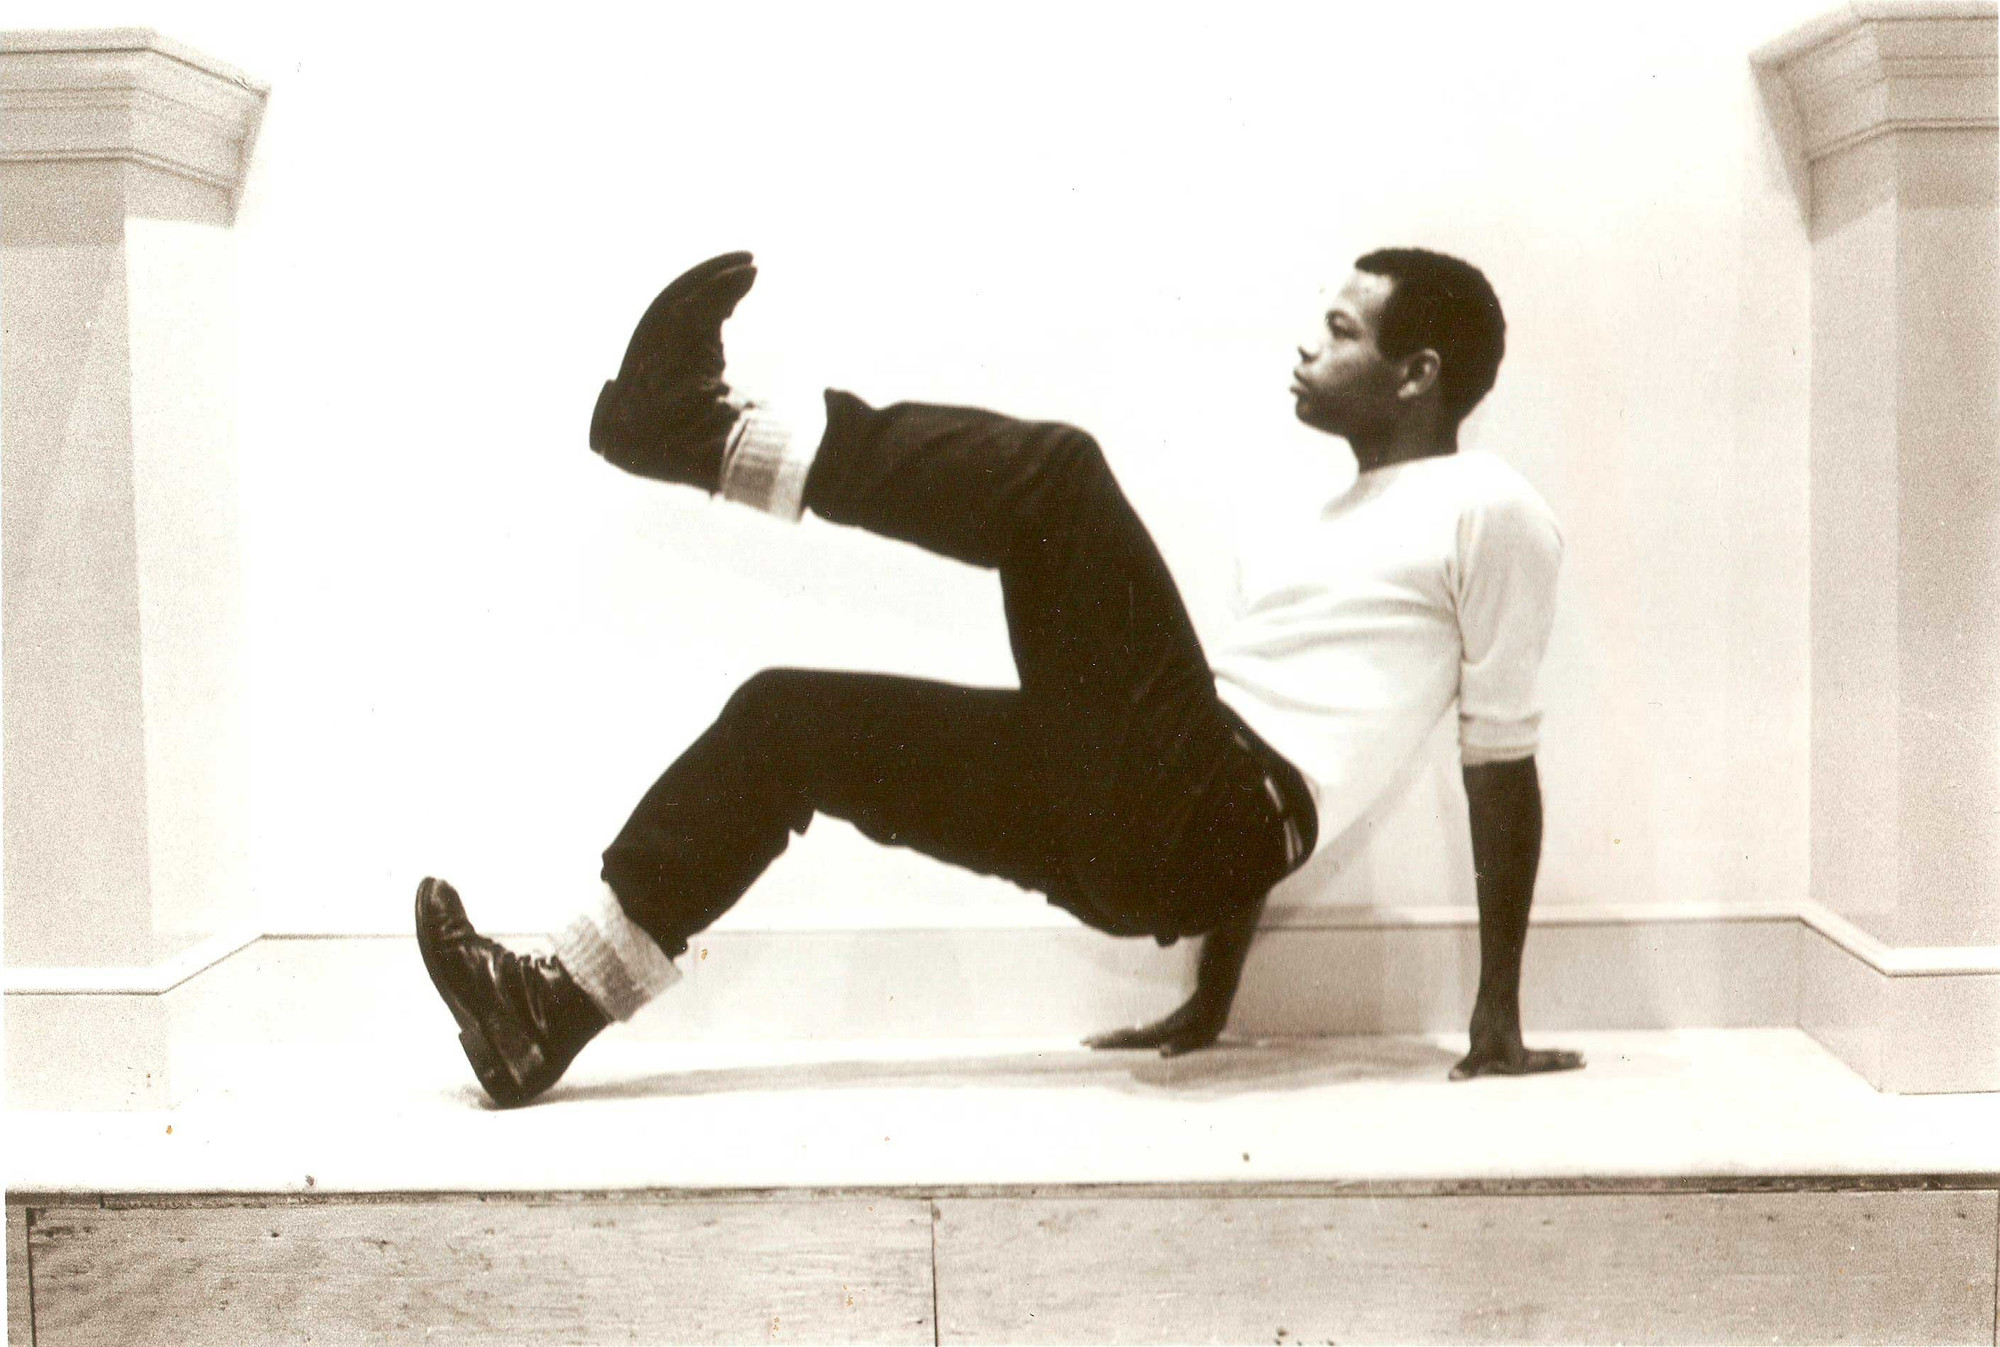 Ishmael Houston-Jones, Danspace Project, 1982. Photo: Pamela Moore